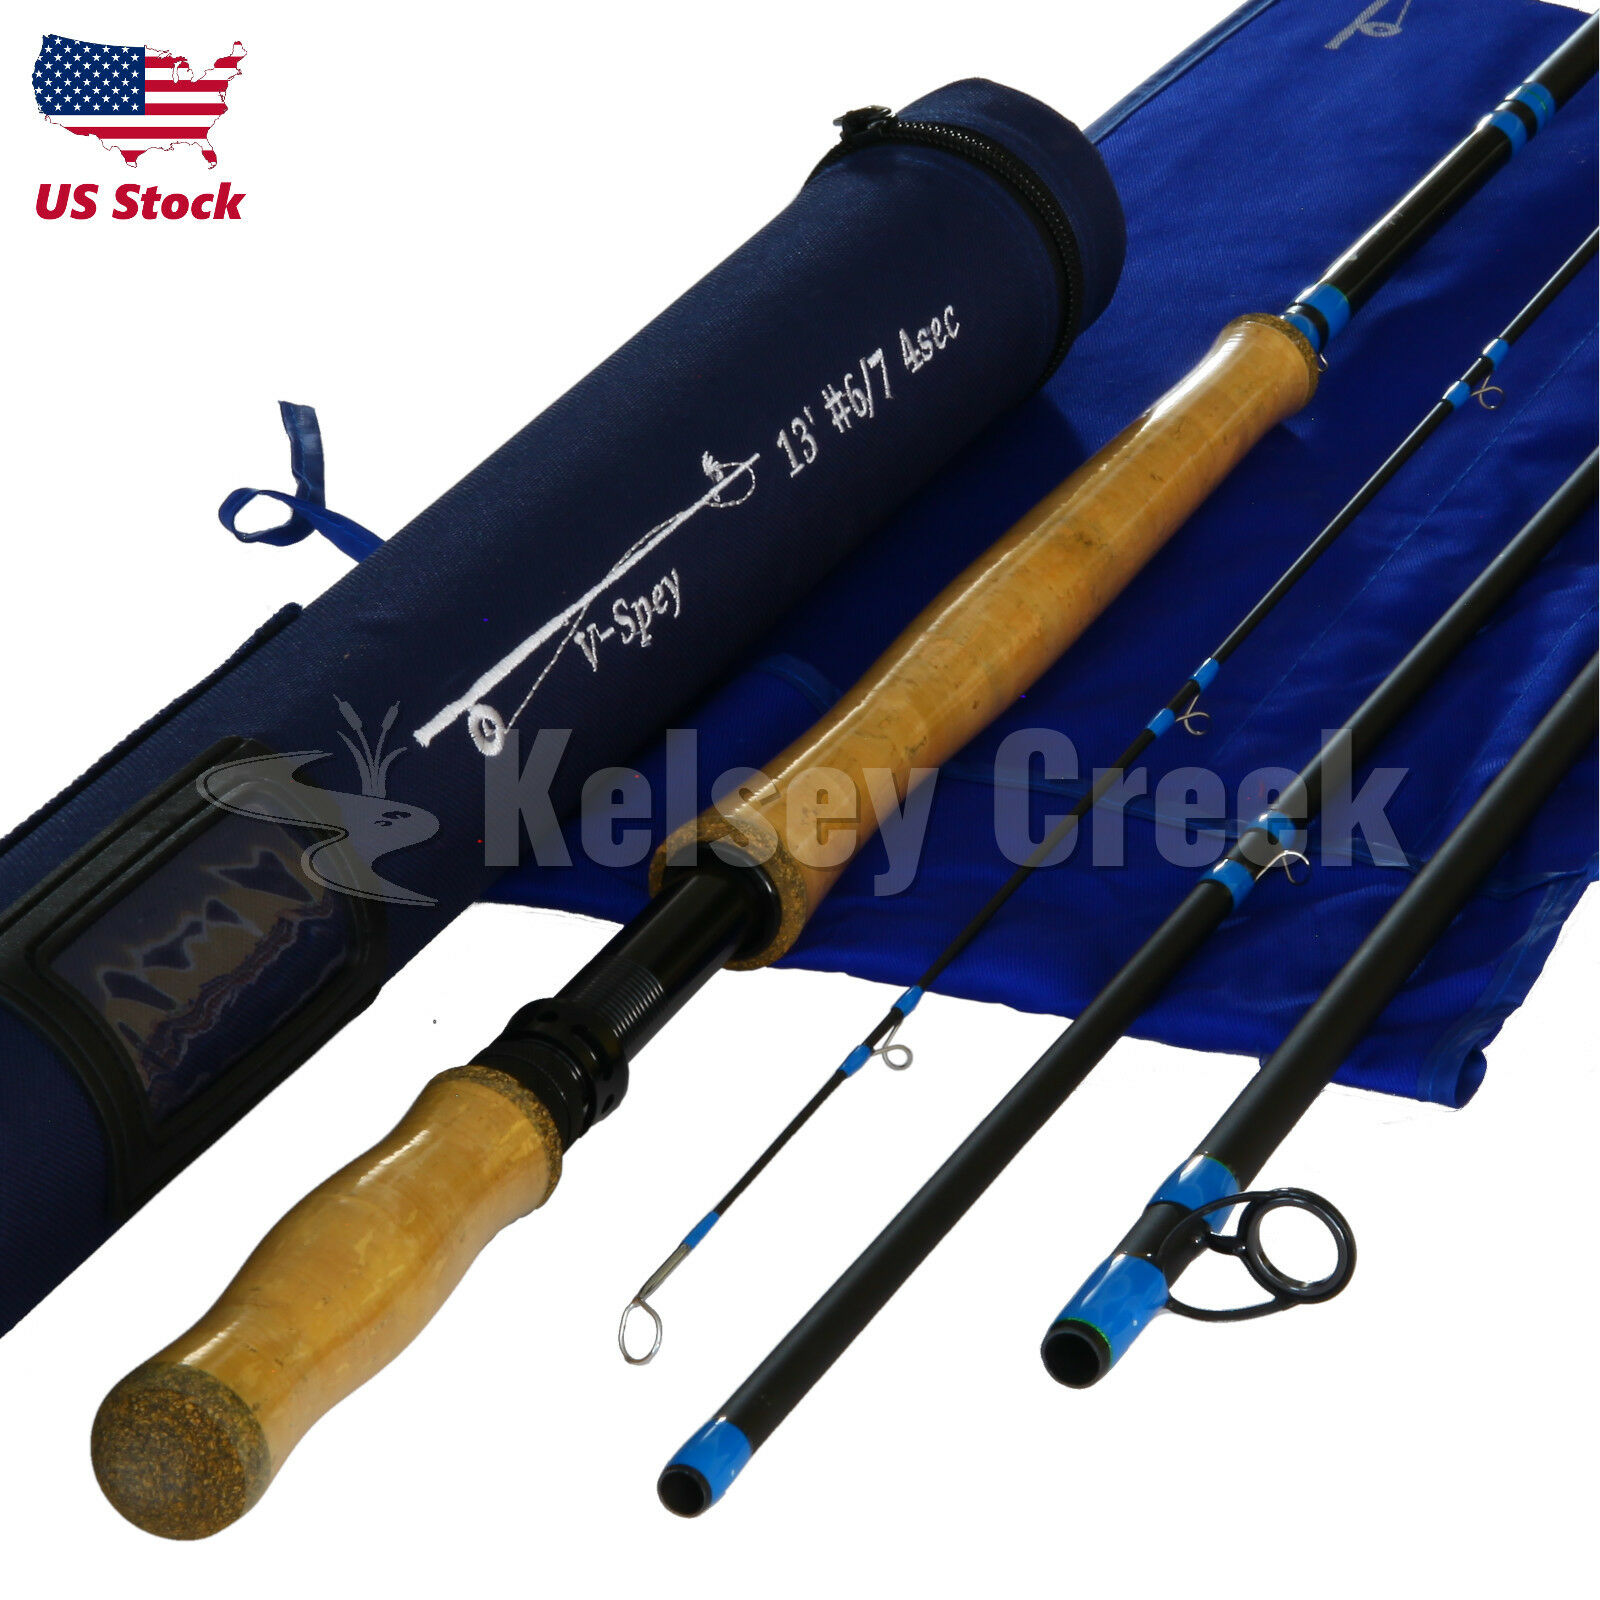 Maxcatch DoubleHanded Spey Rod, IM10 Carbon Fiber, with Rod Tube